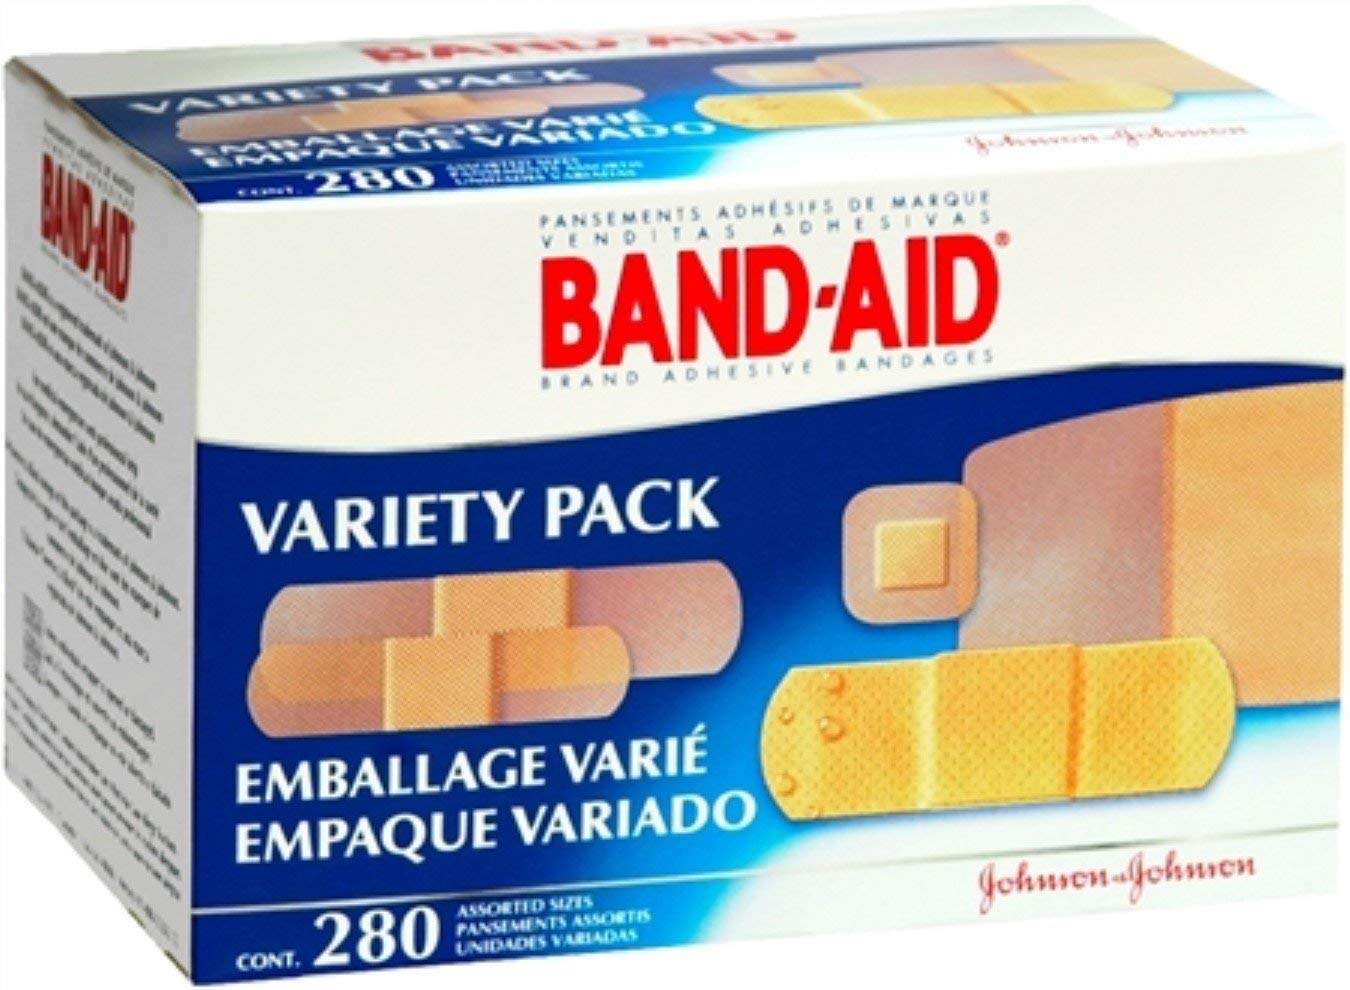 BAND-AID Bandages Variety Pack 280 Each (Pack of 12)